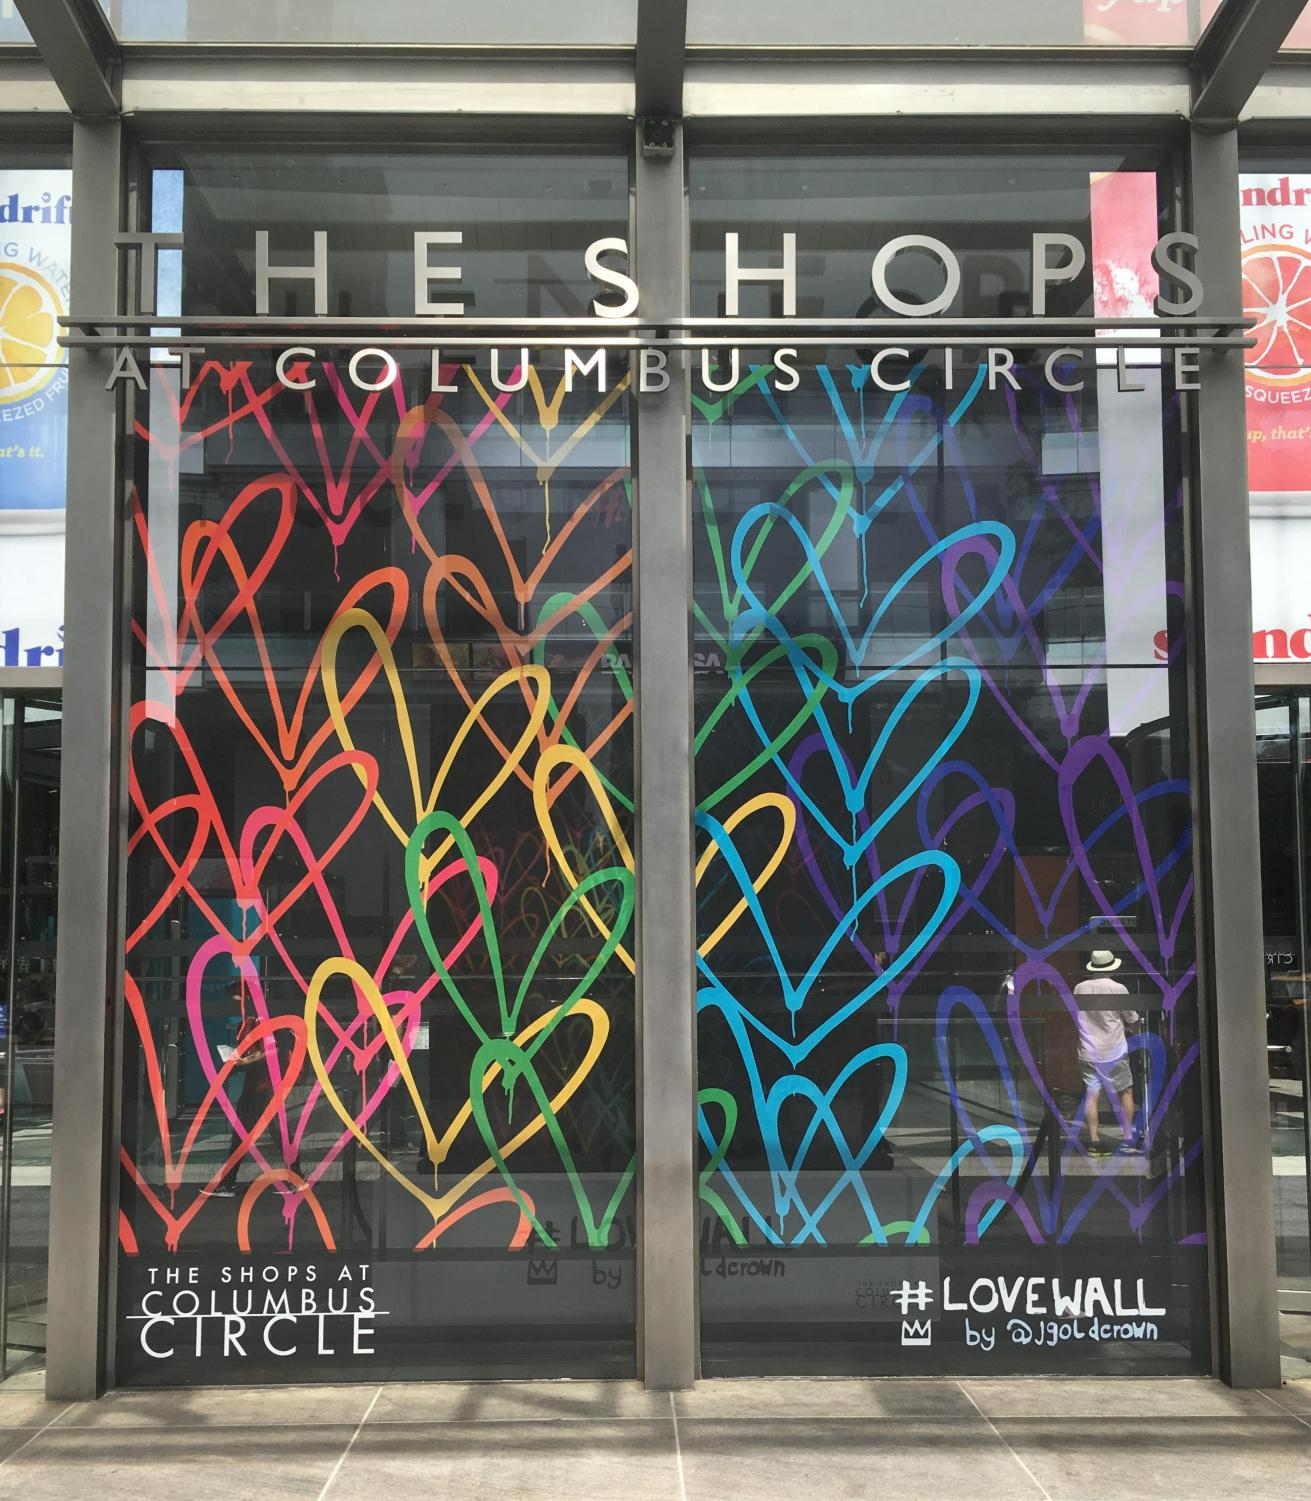 The Shops at Columbus Circle and various other NYC shops, clubs and museums are hosting special events to celebrate Pride Month.